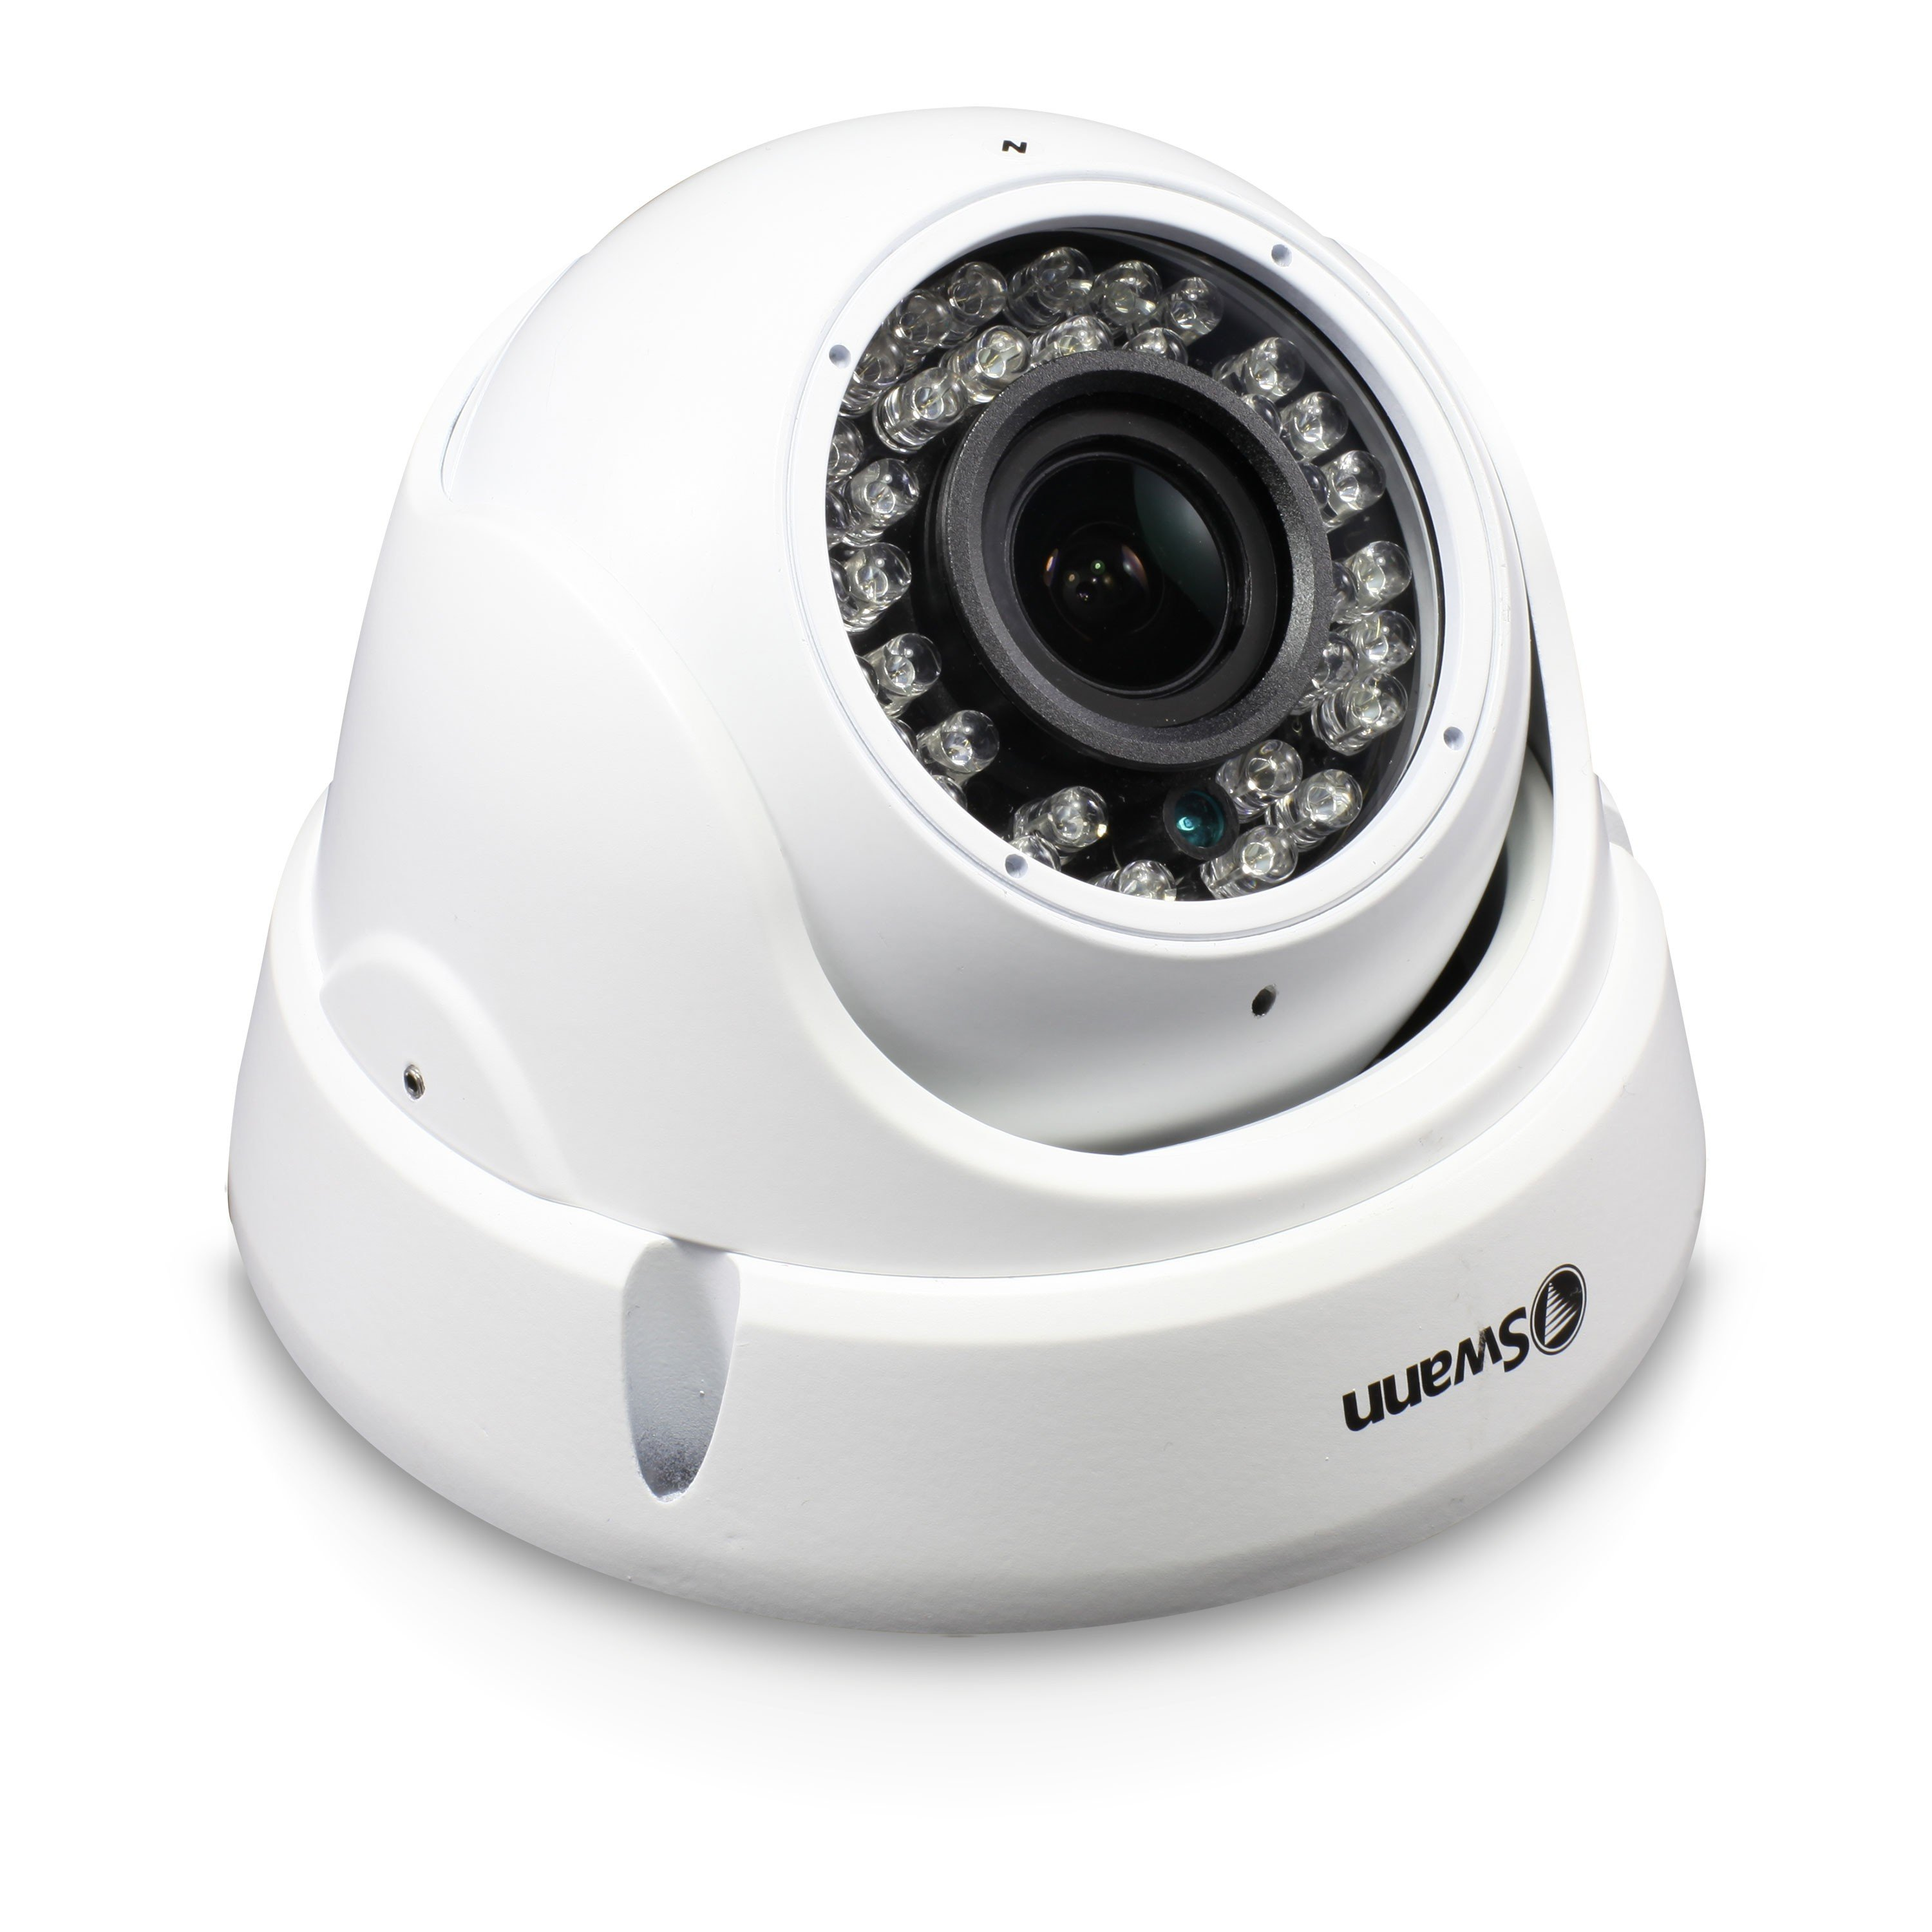 a place to call home complete series 4 camera advance pro series cctv installation cctv SWPRO-1080ZLD Swann Outdoor Security Camera: 1080p Full HD Dome with 4 x  Zoom